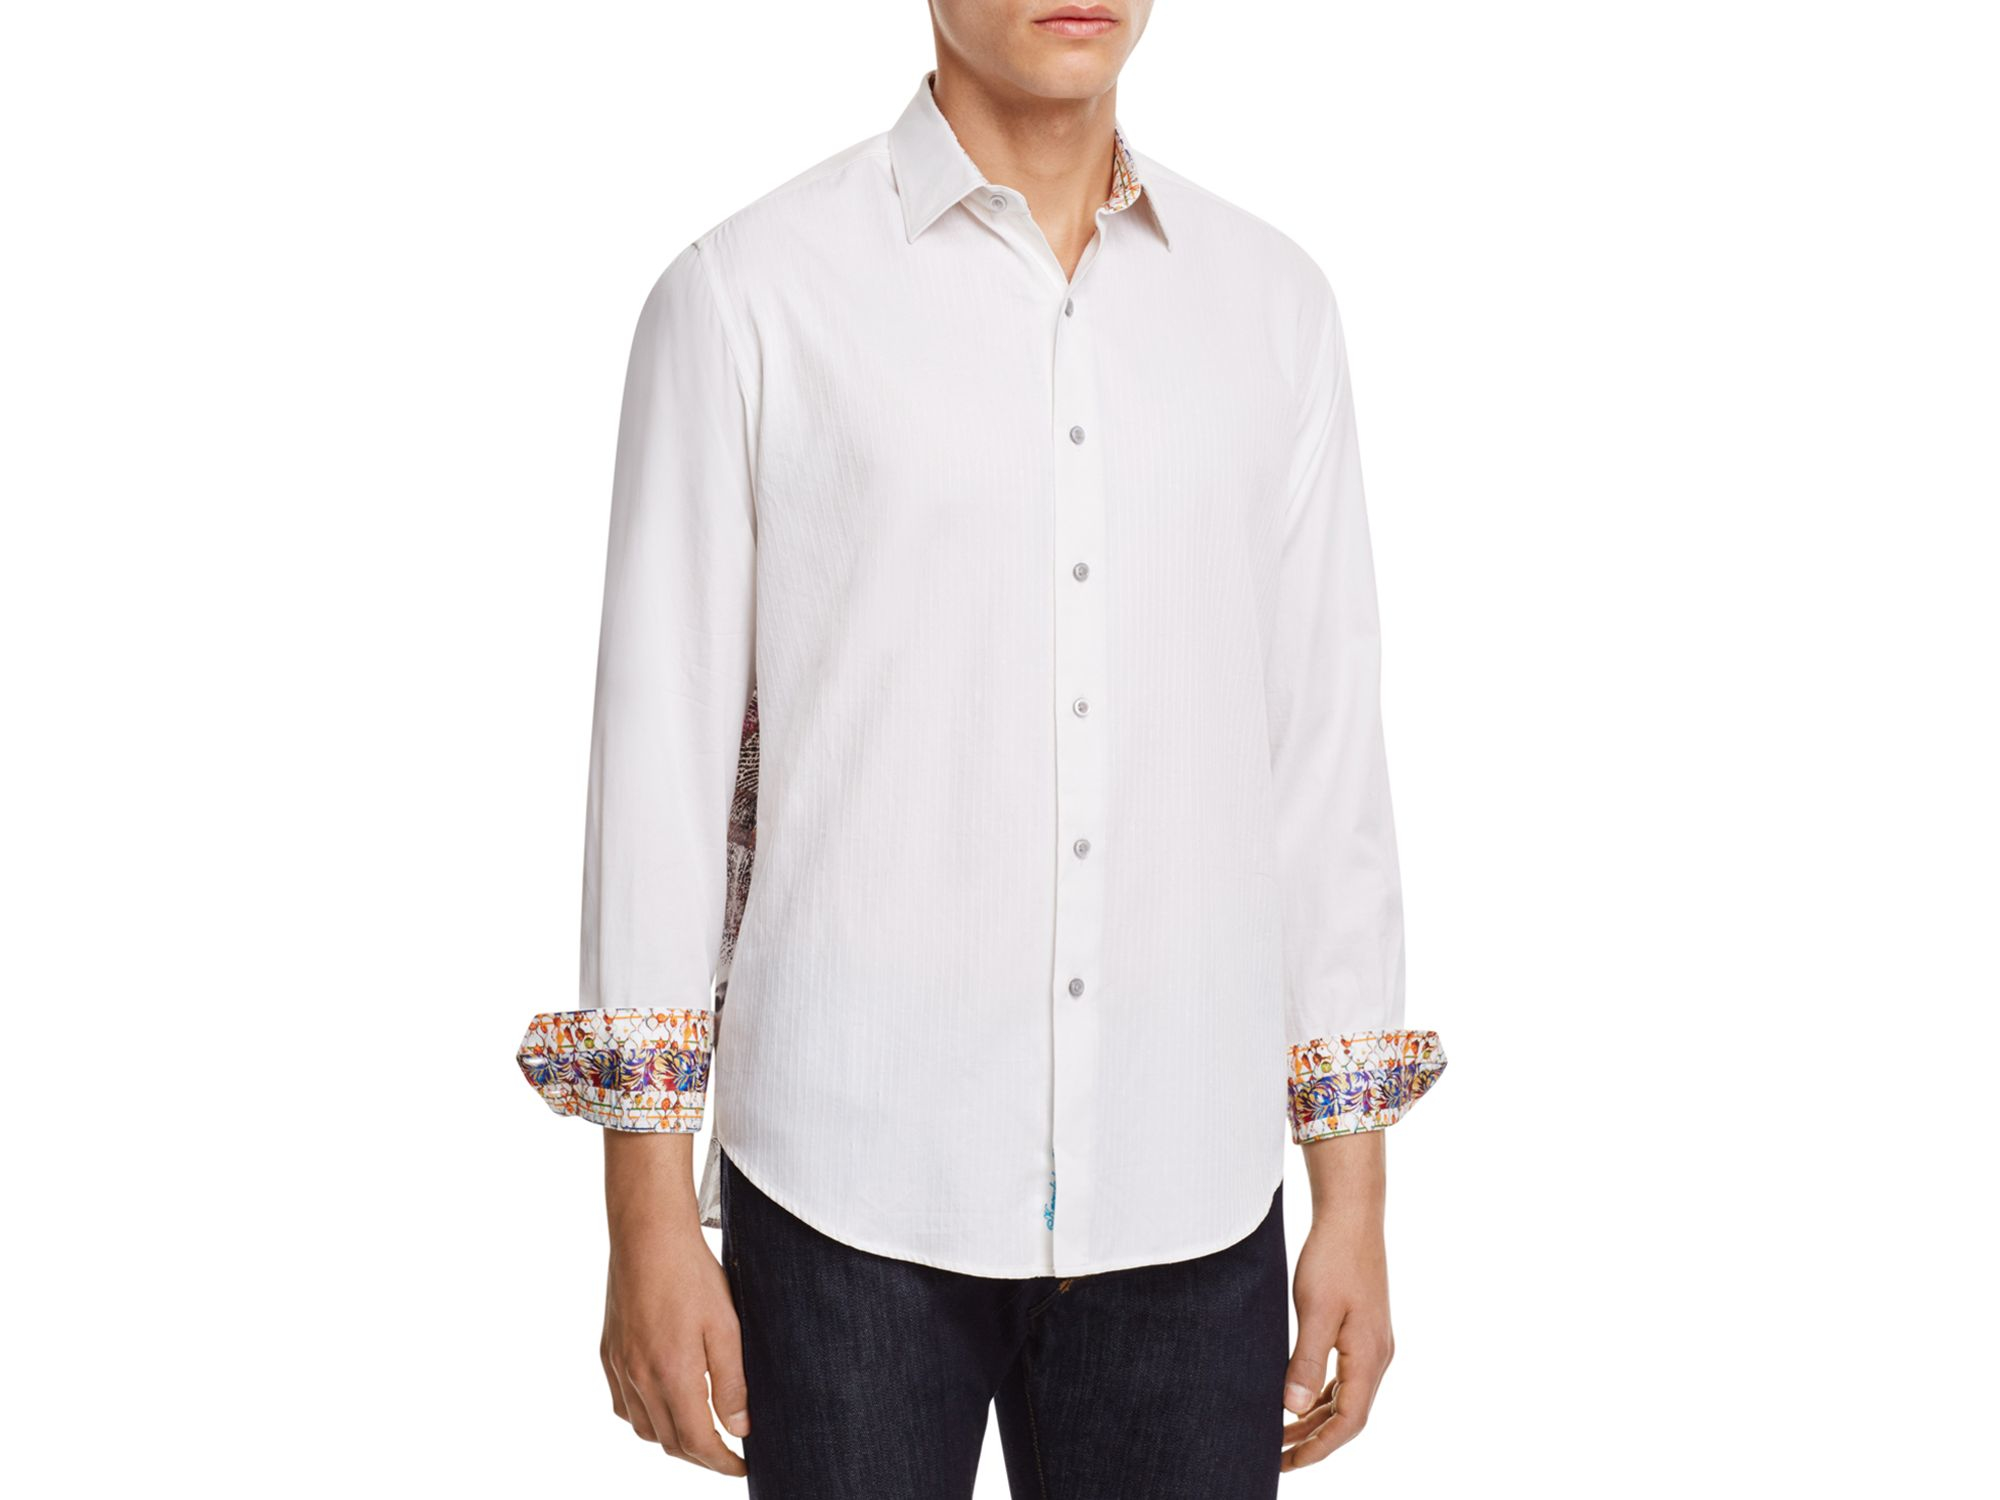 Robert graham volcanic rock classic fit button down shirt for Preppy button down shirts